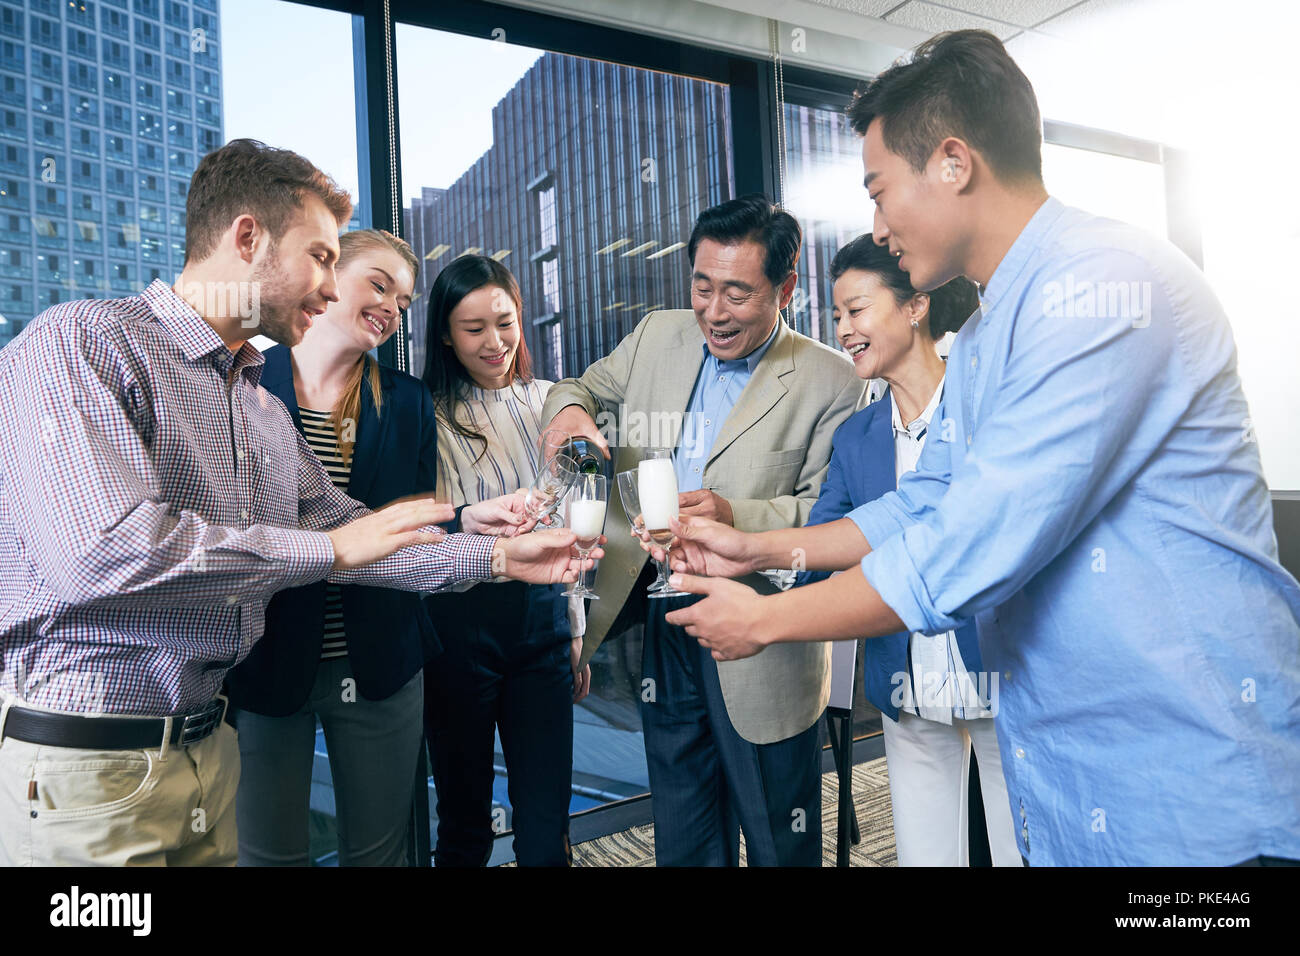 Business men and women in the office - Stock Image